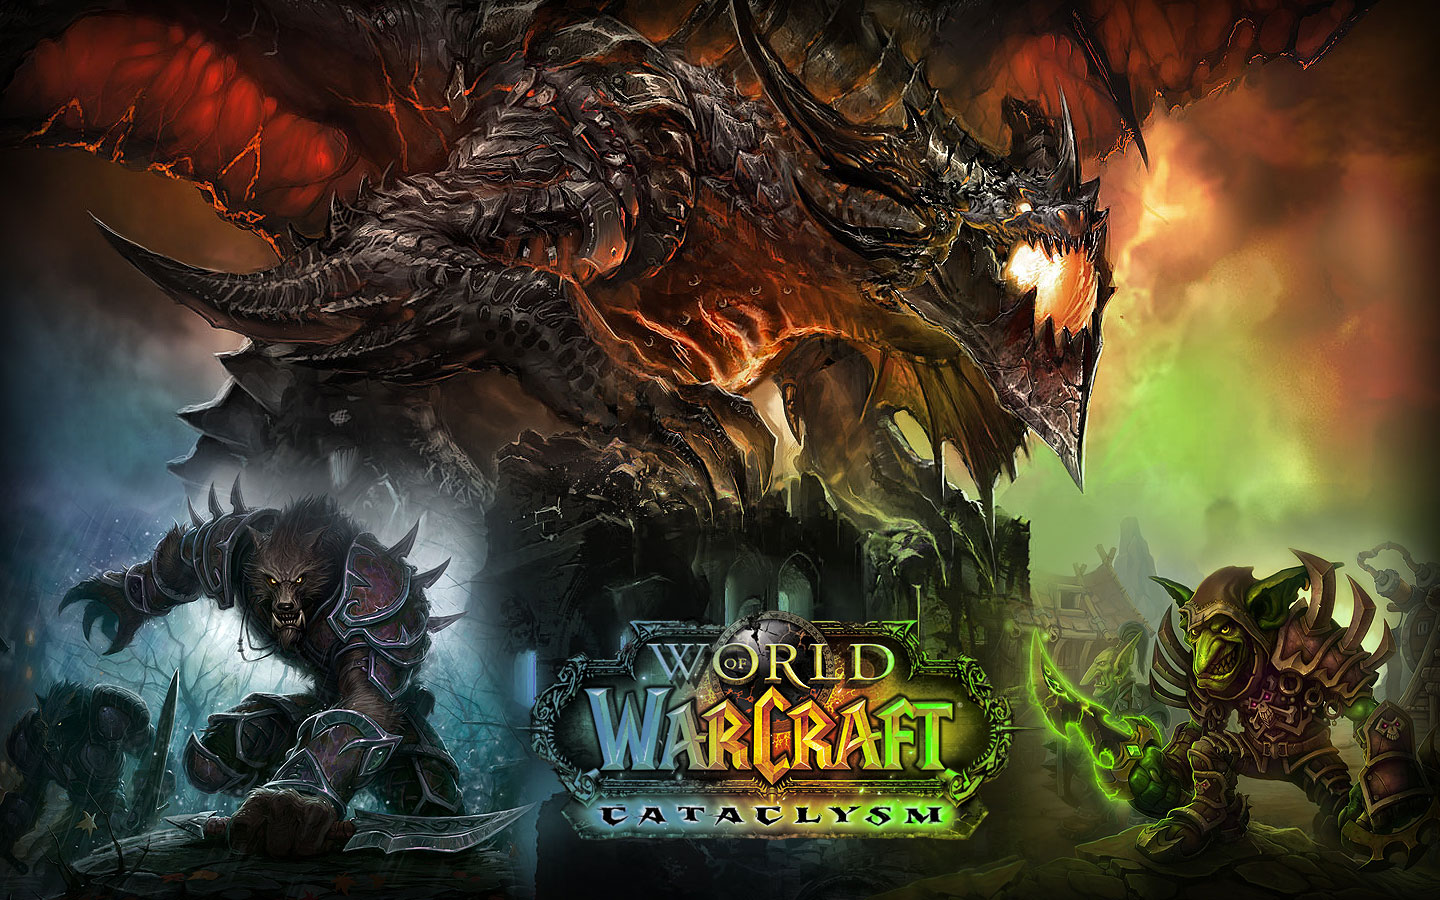 World of warcraft Computer Wallpapers Desktop Backgrounds 1440x900 1440x900